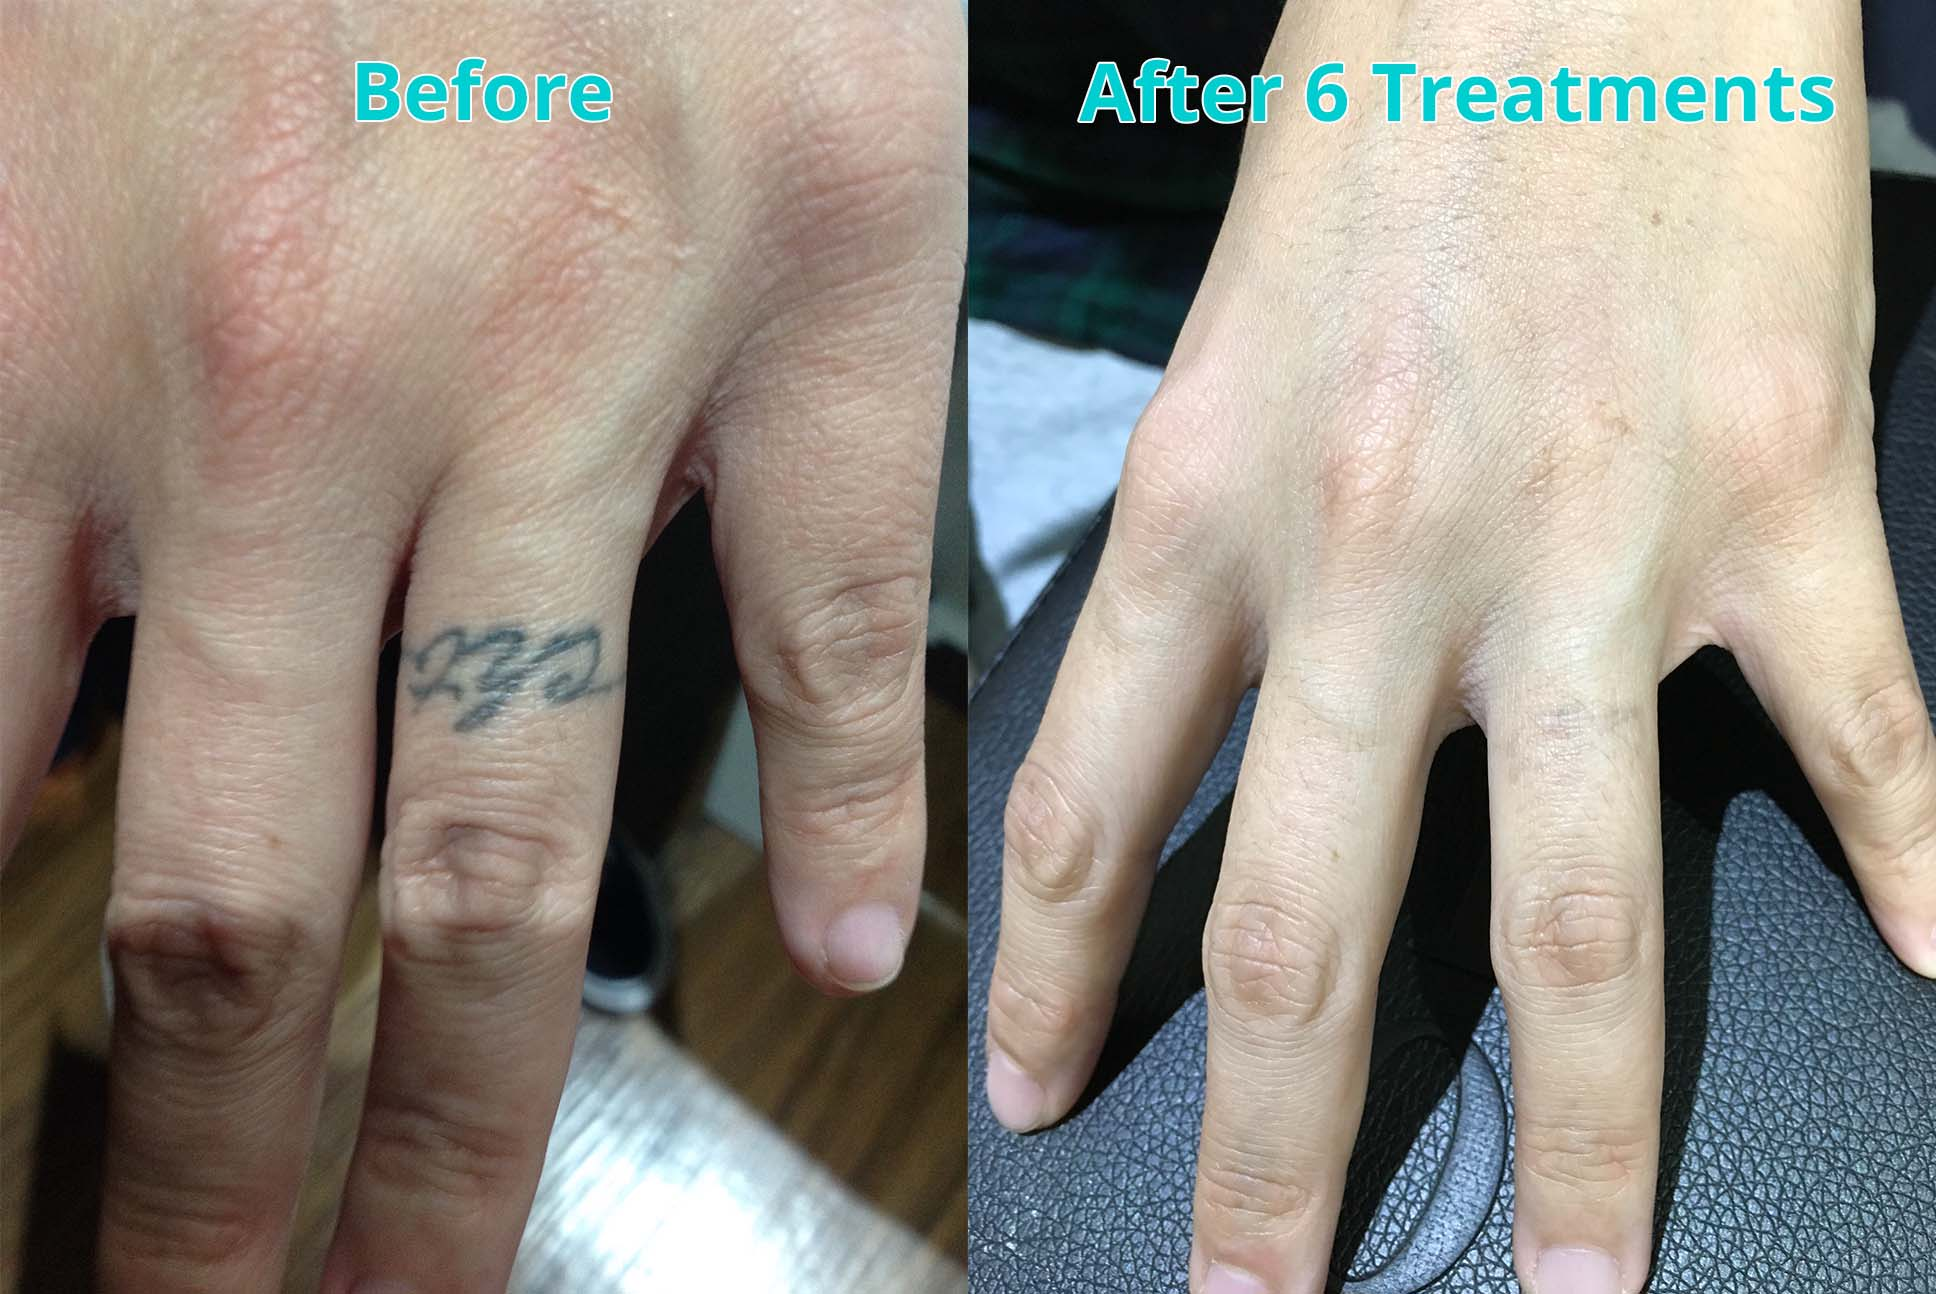 Before and After 6 Treatments